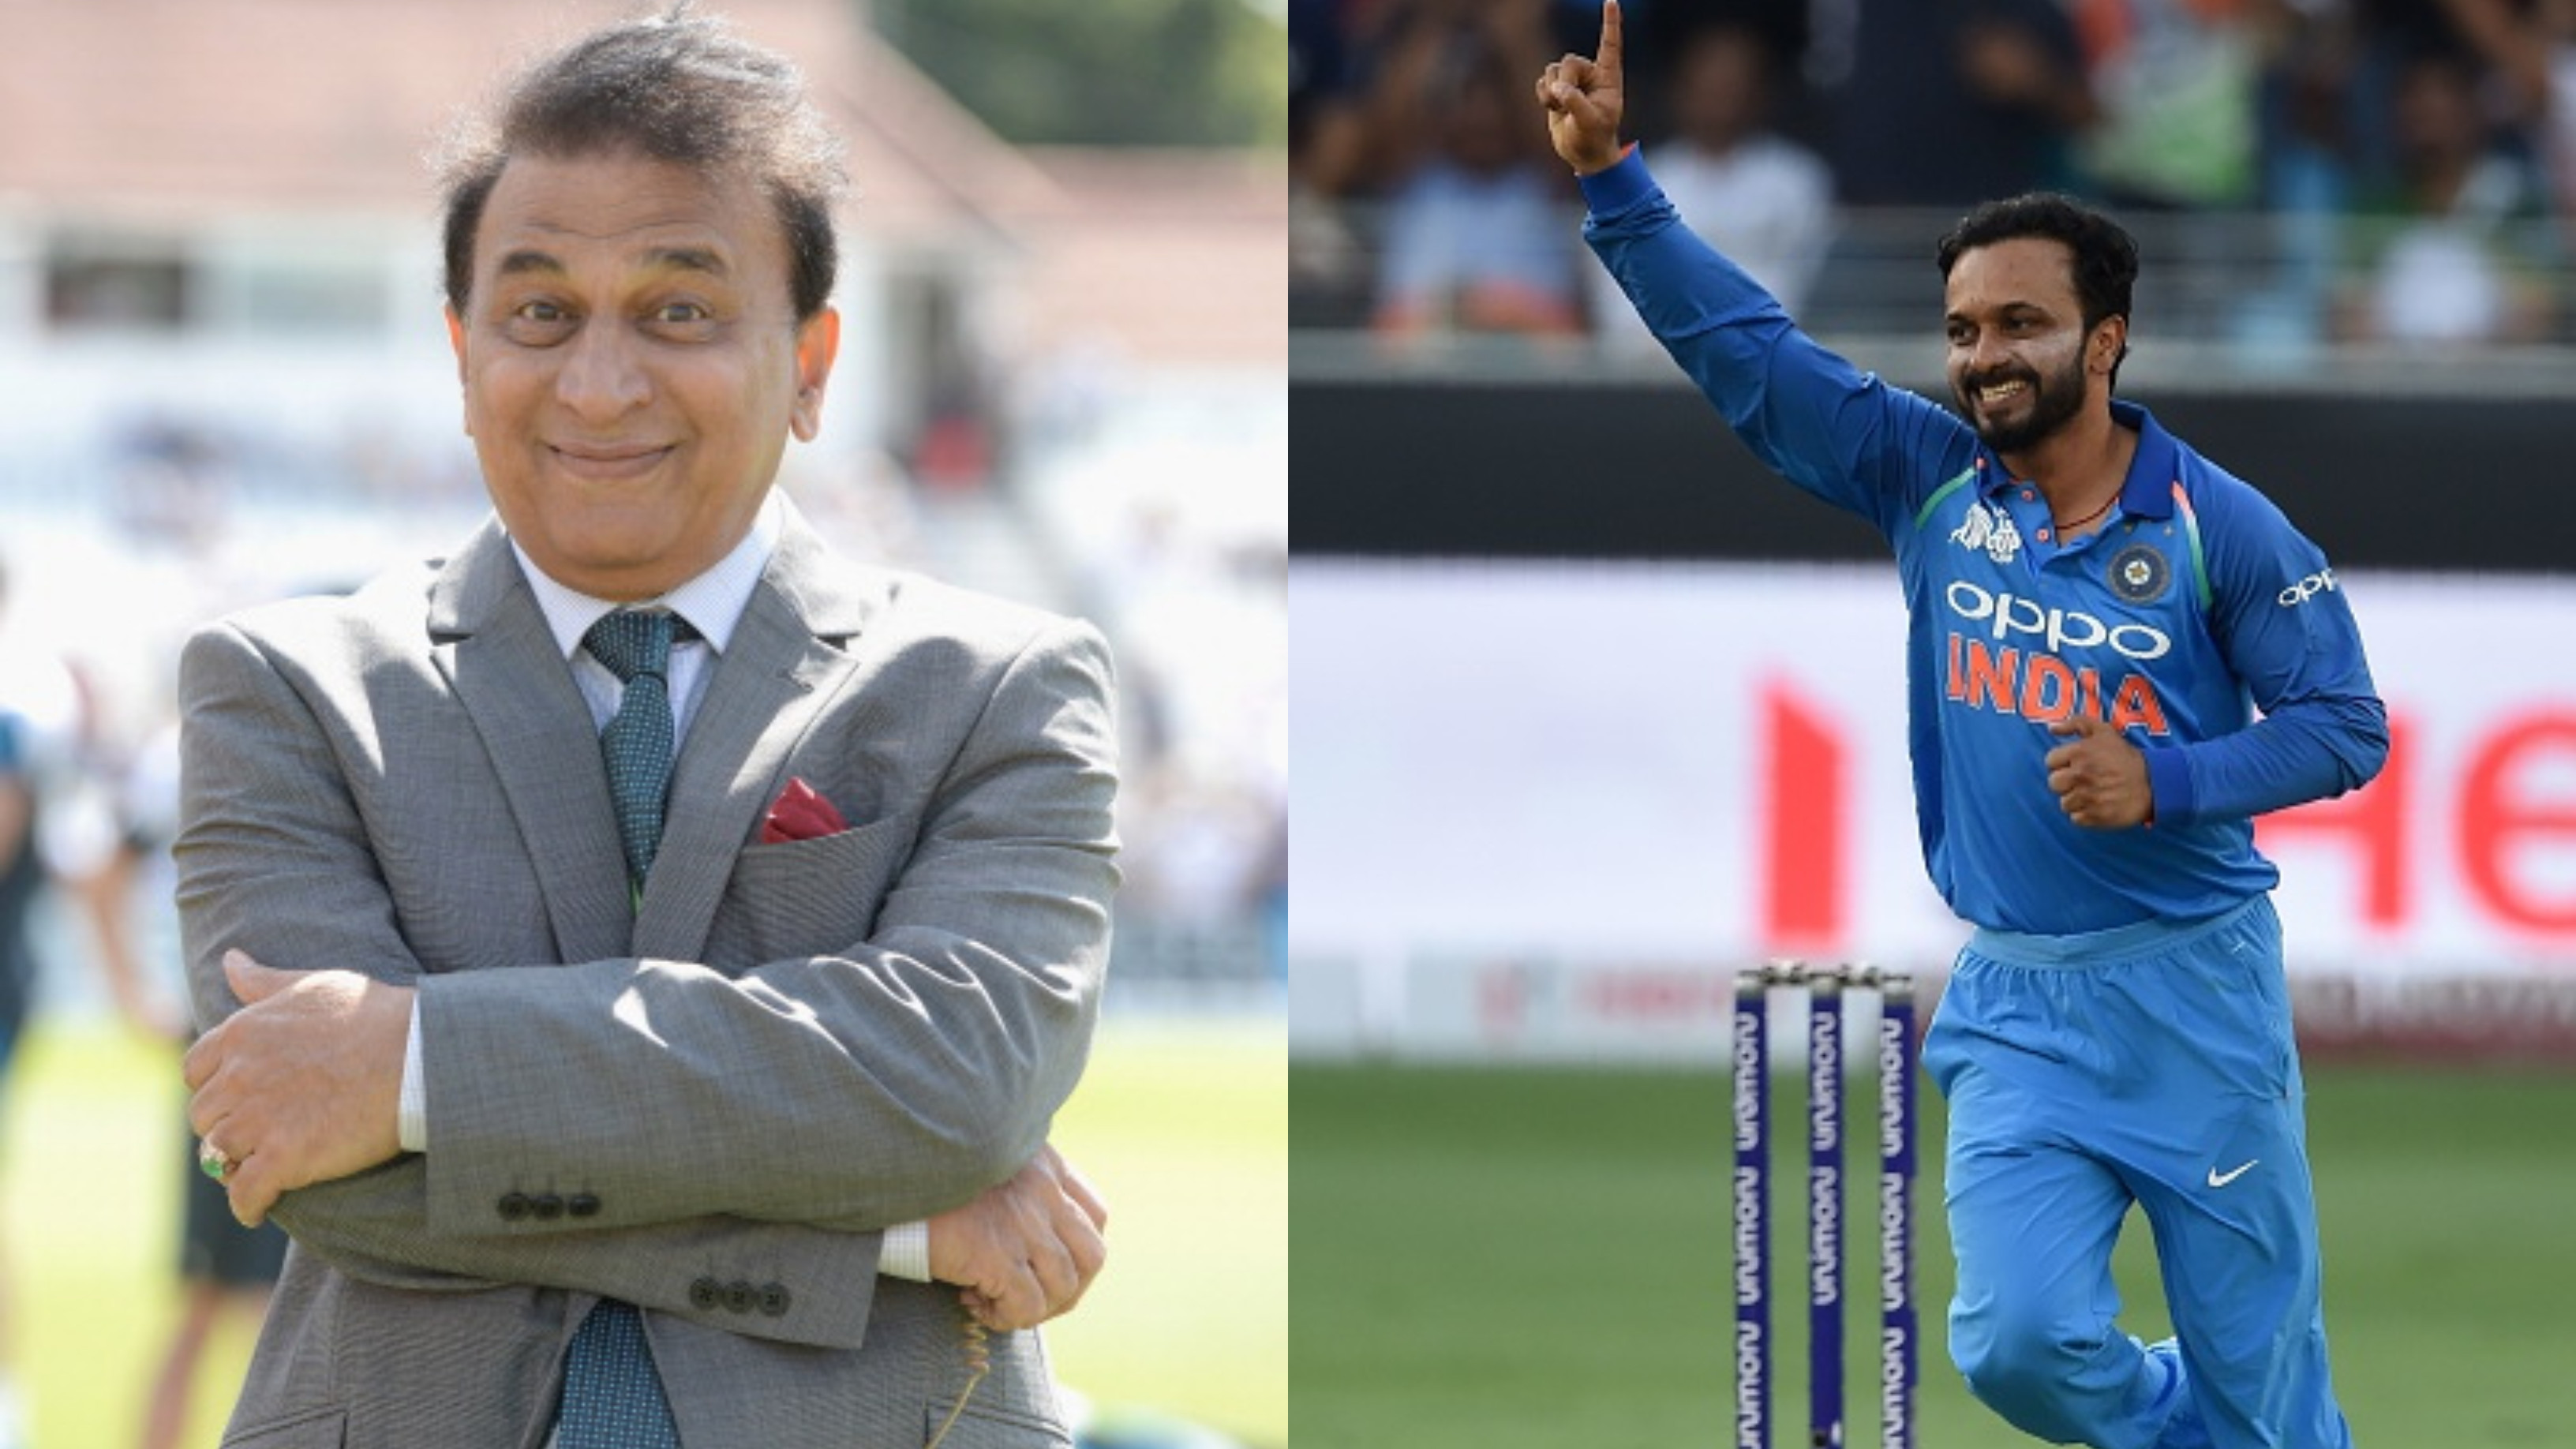 Asia Cup 2018: Sunil Gavaskar backs Kedar Jadhav for all-rounder's role in the tournament